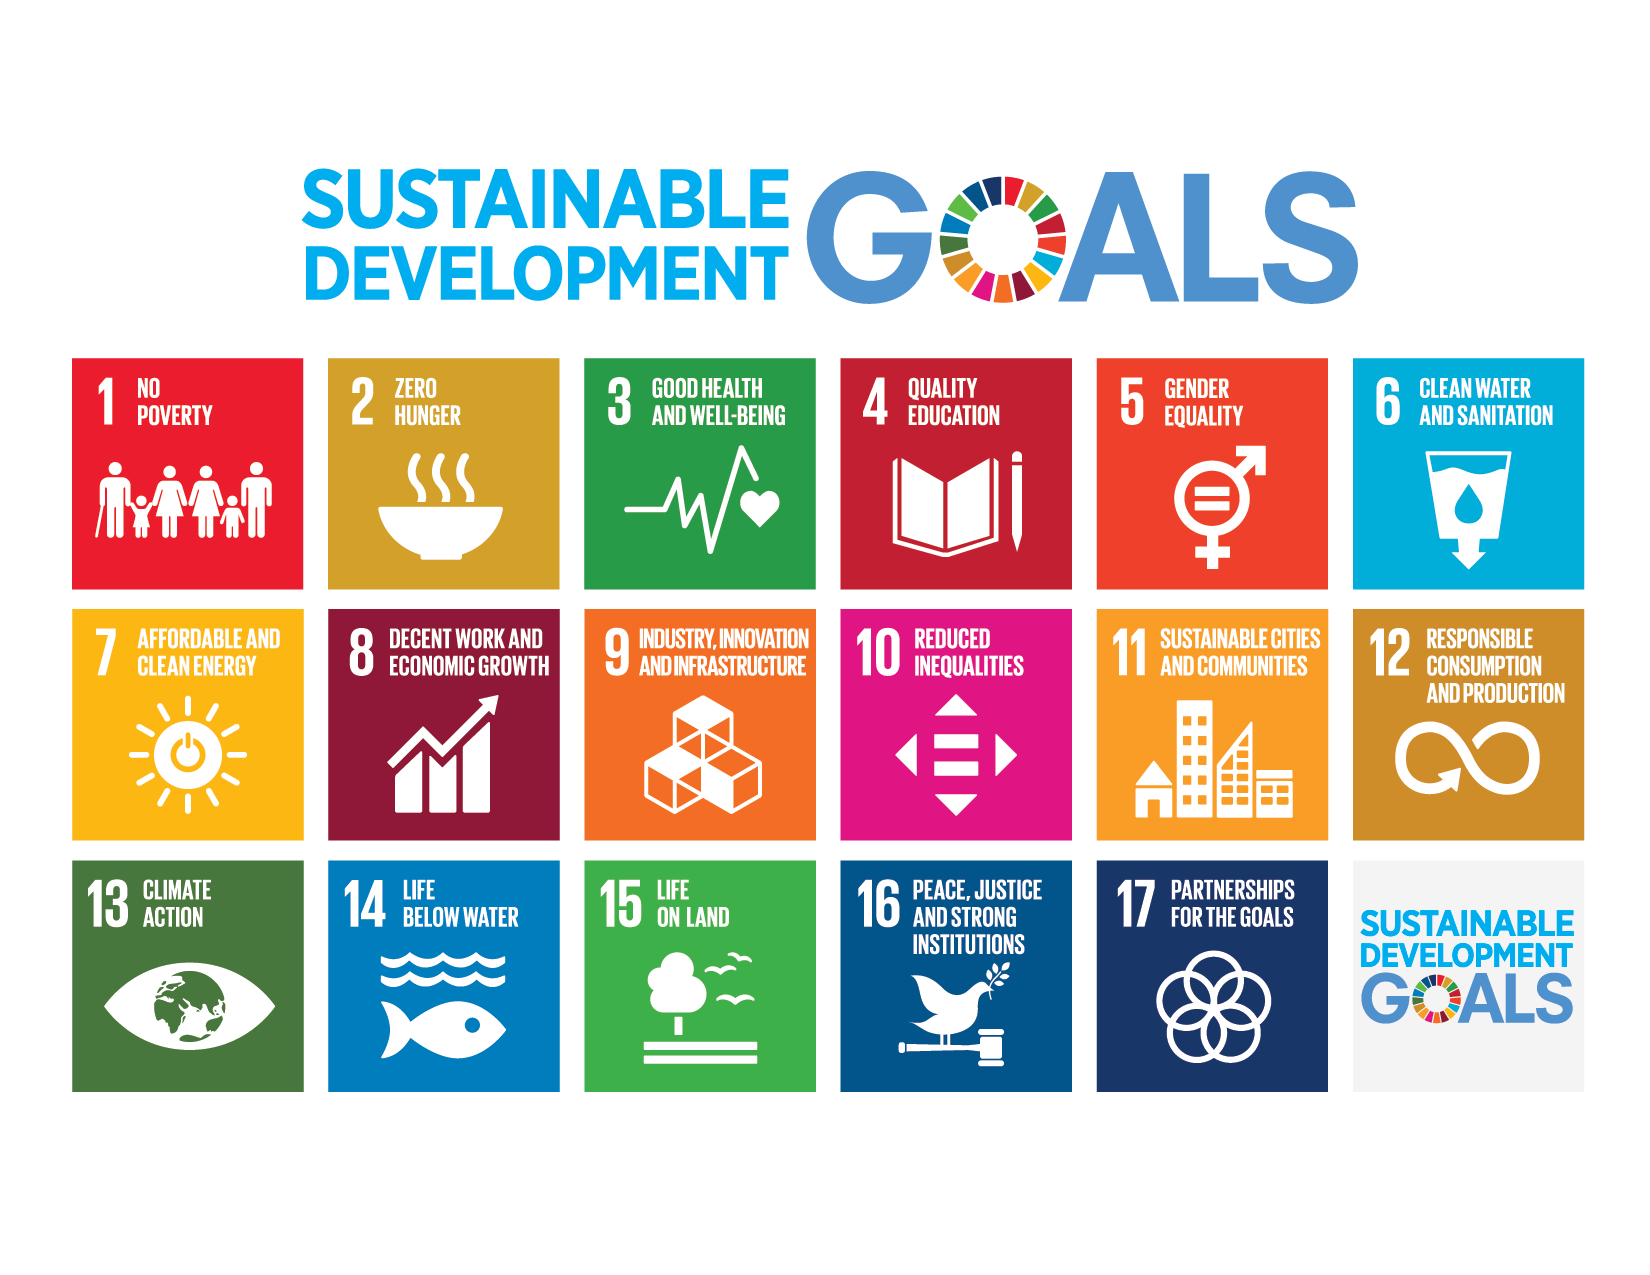 SDGs grid showing icons for the 17 UN goals